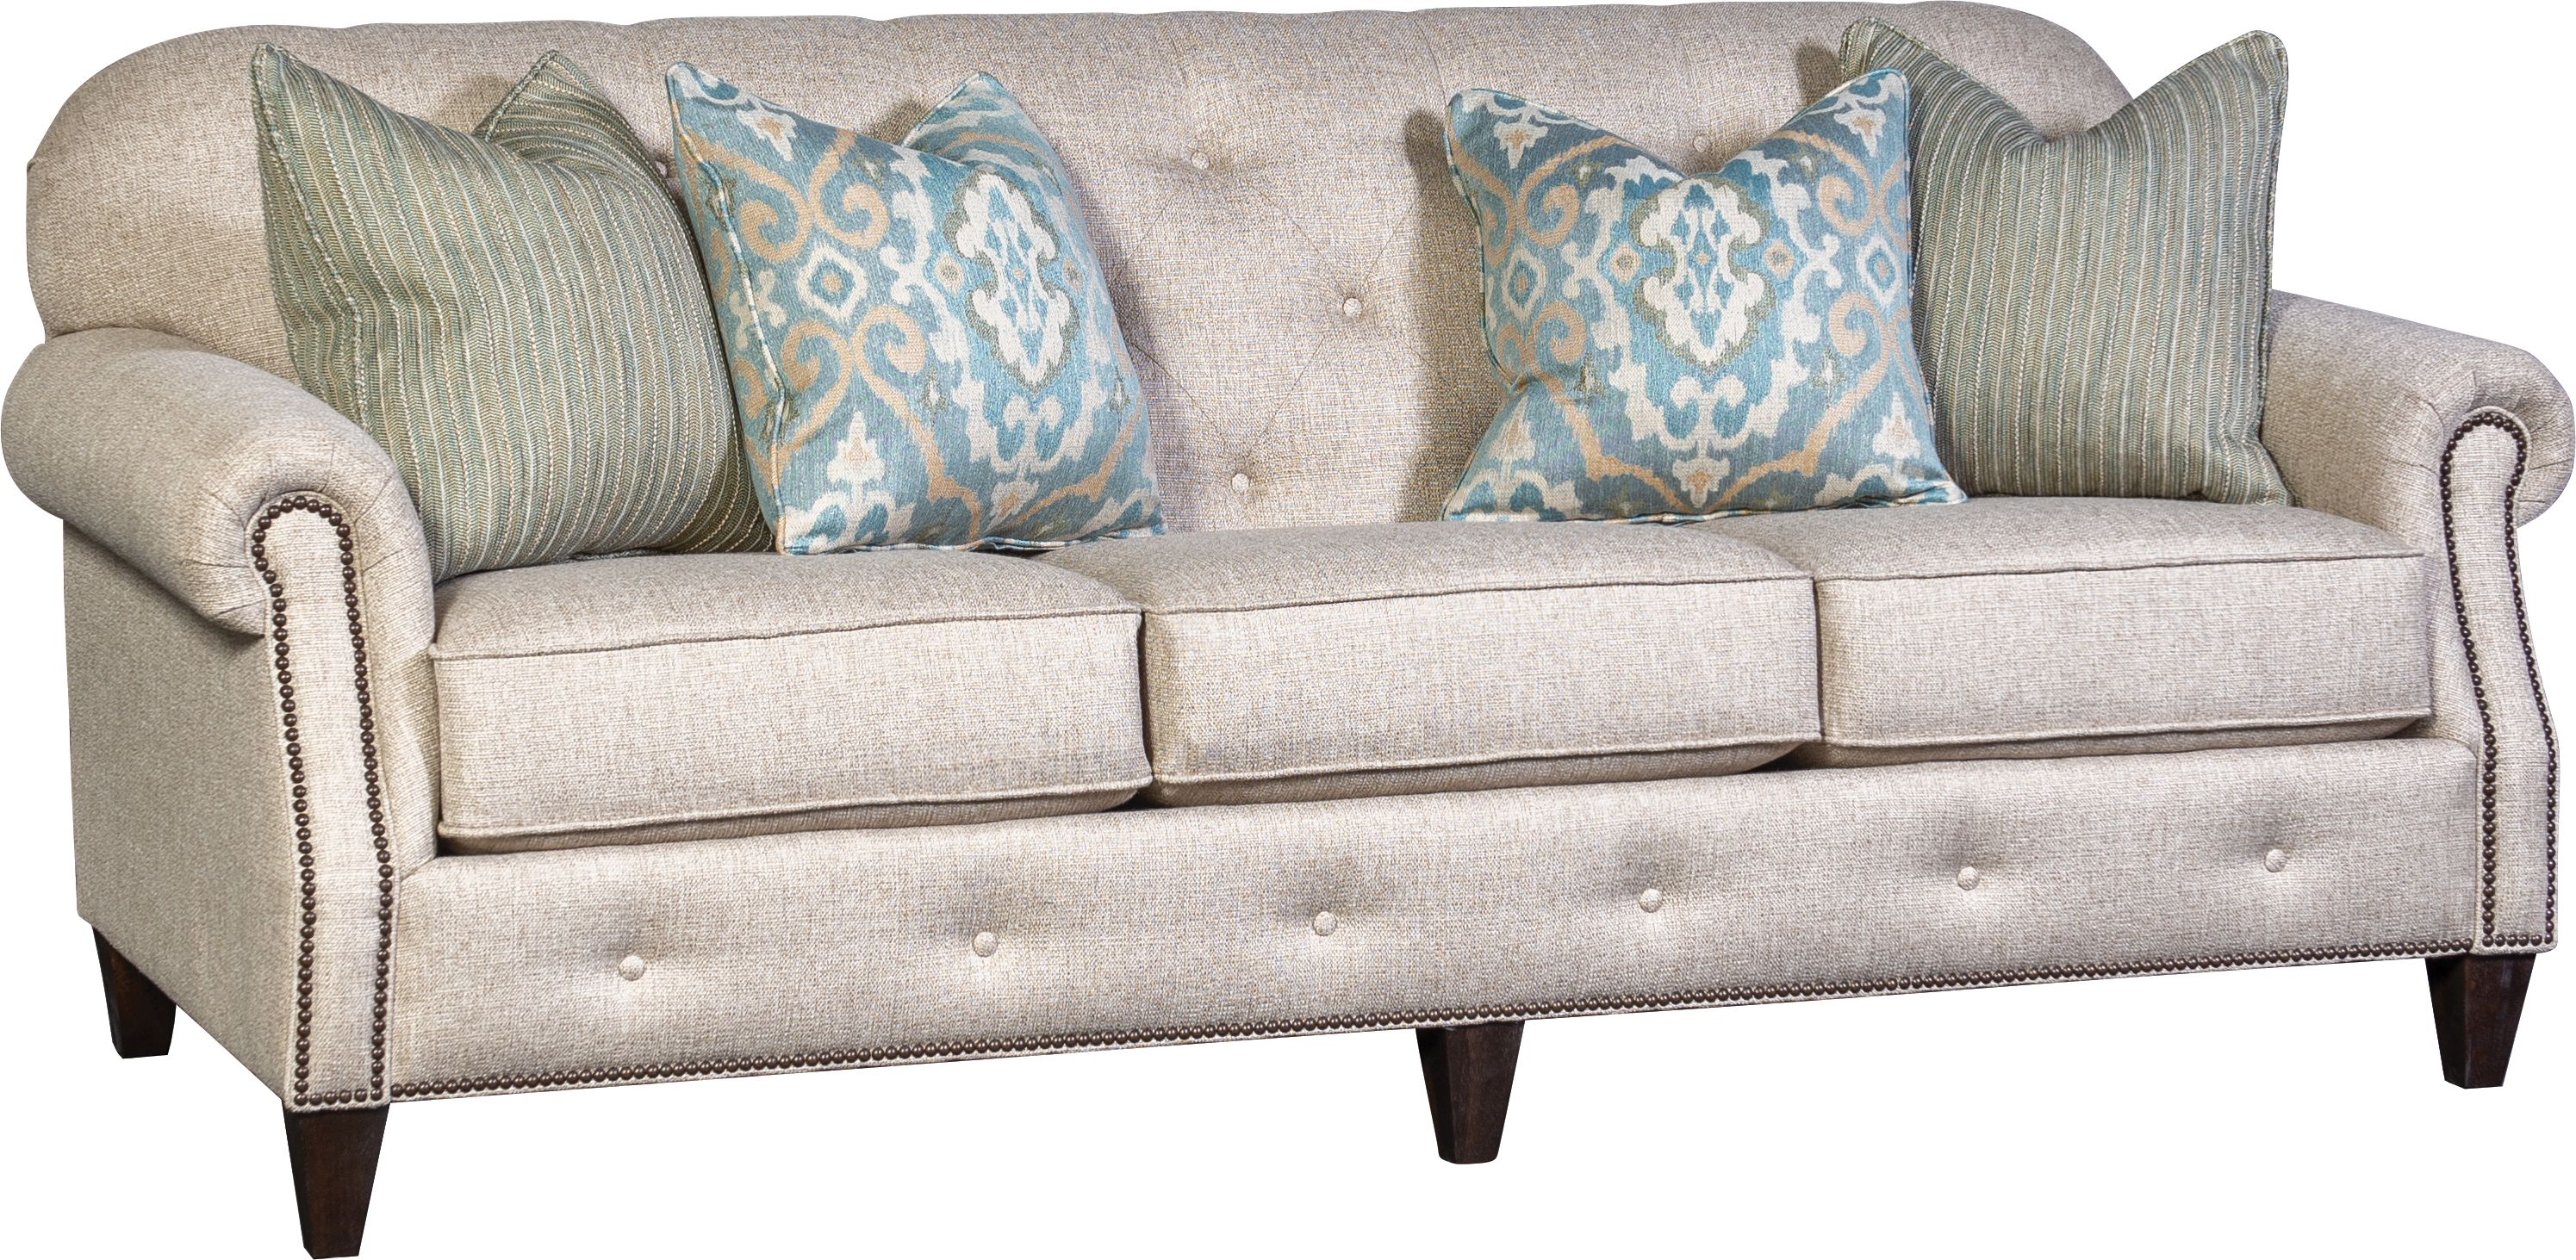 2262f Sofa In Hanson Greige With Images Cushions On Sofa Living Room Sofa Stacy Furniture